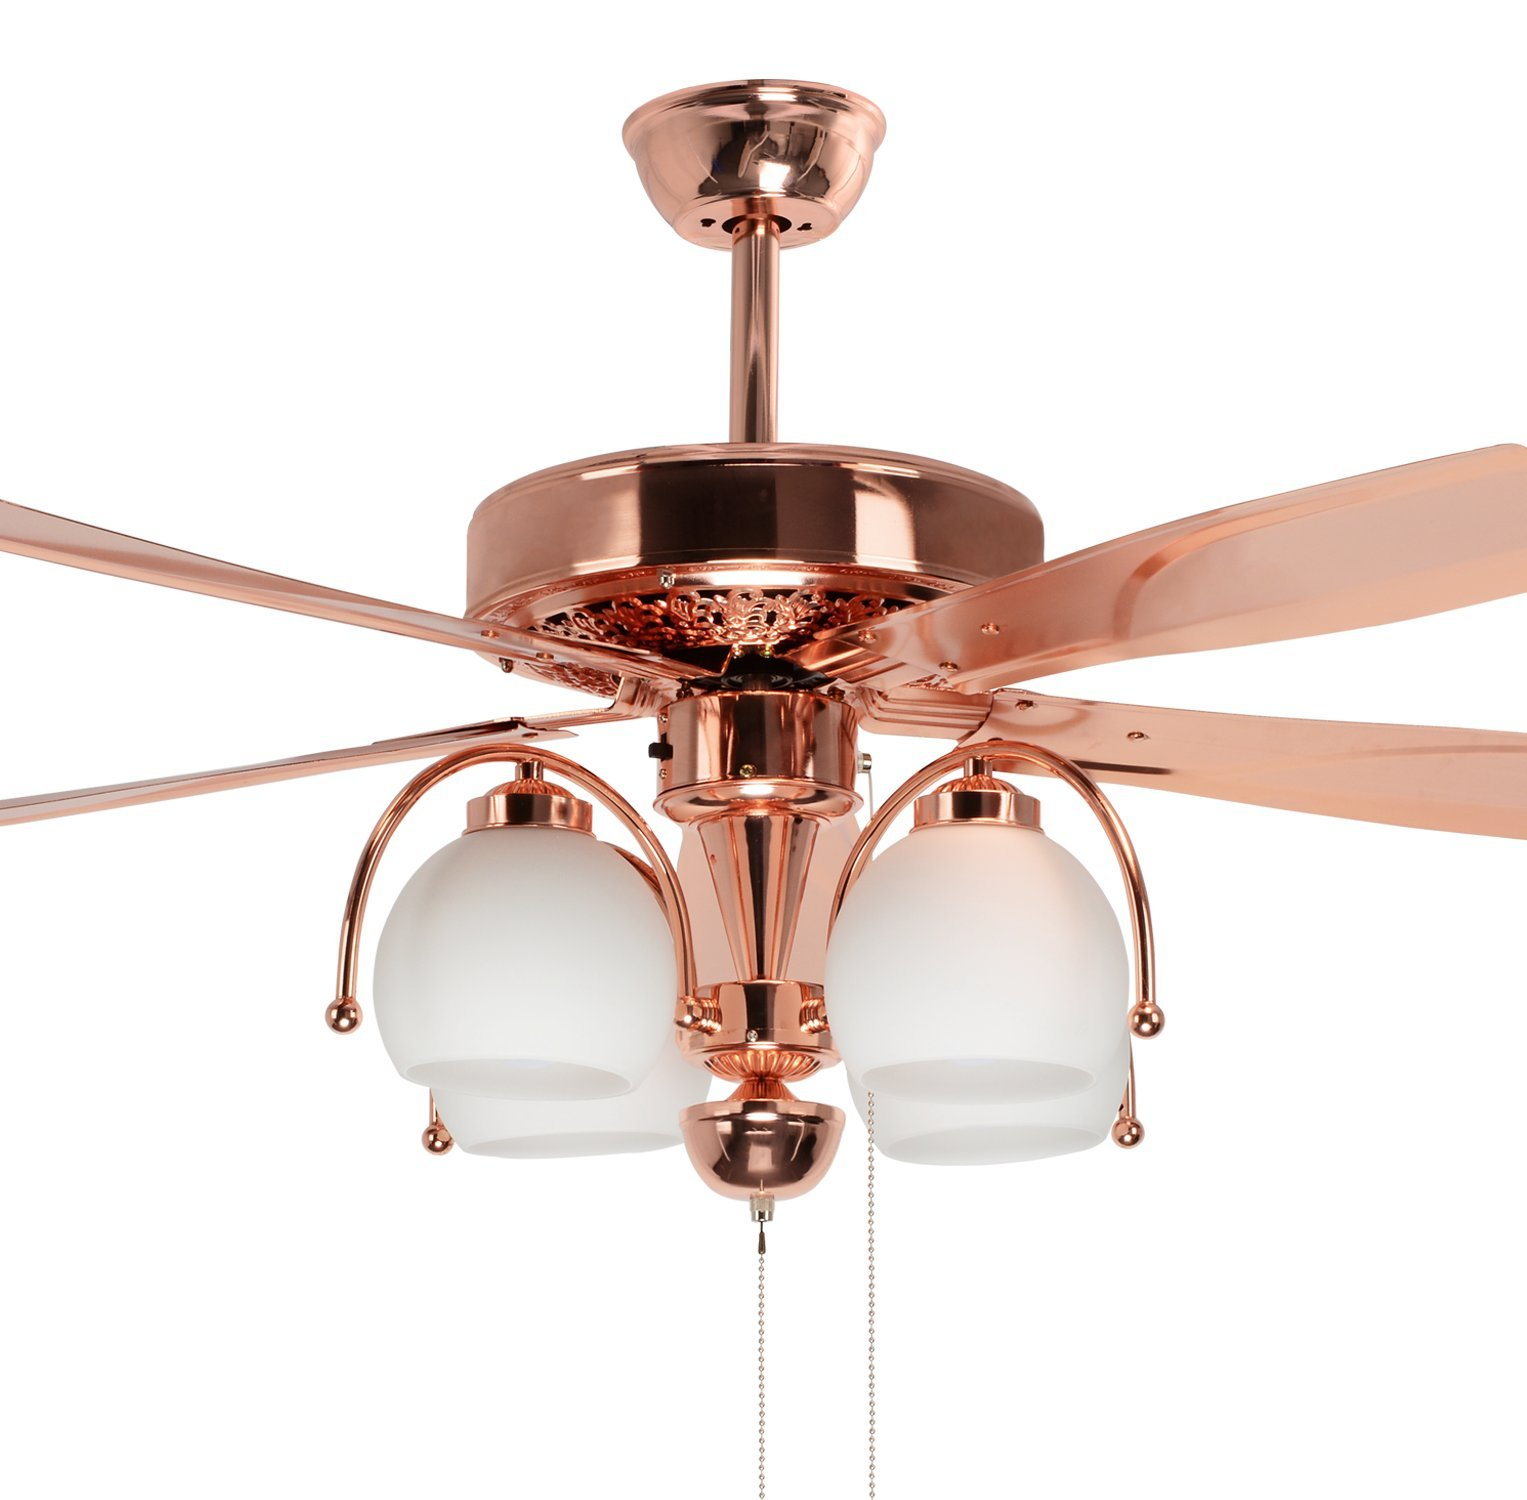 Akronfire Modern Gold Ceiling Fan Decoration Living Room Bedroom Indoor Pull Chain Control with 5 Reversible Iron Blades 48 Inch of Mute Electric Fan Light